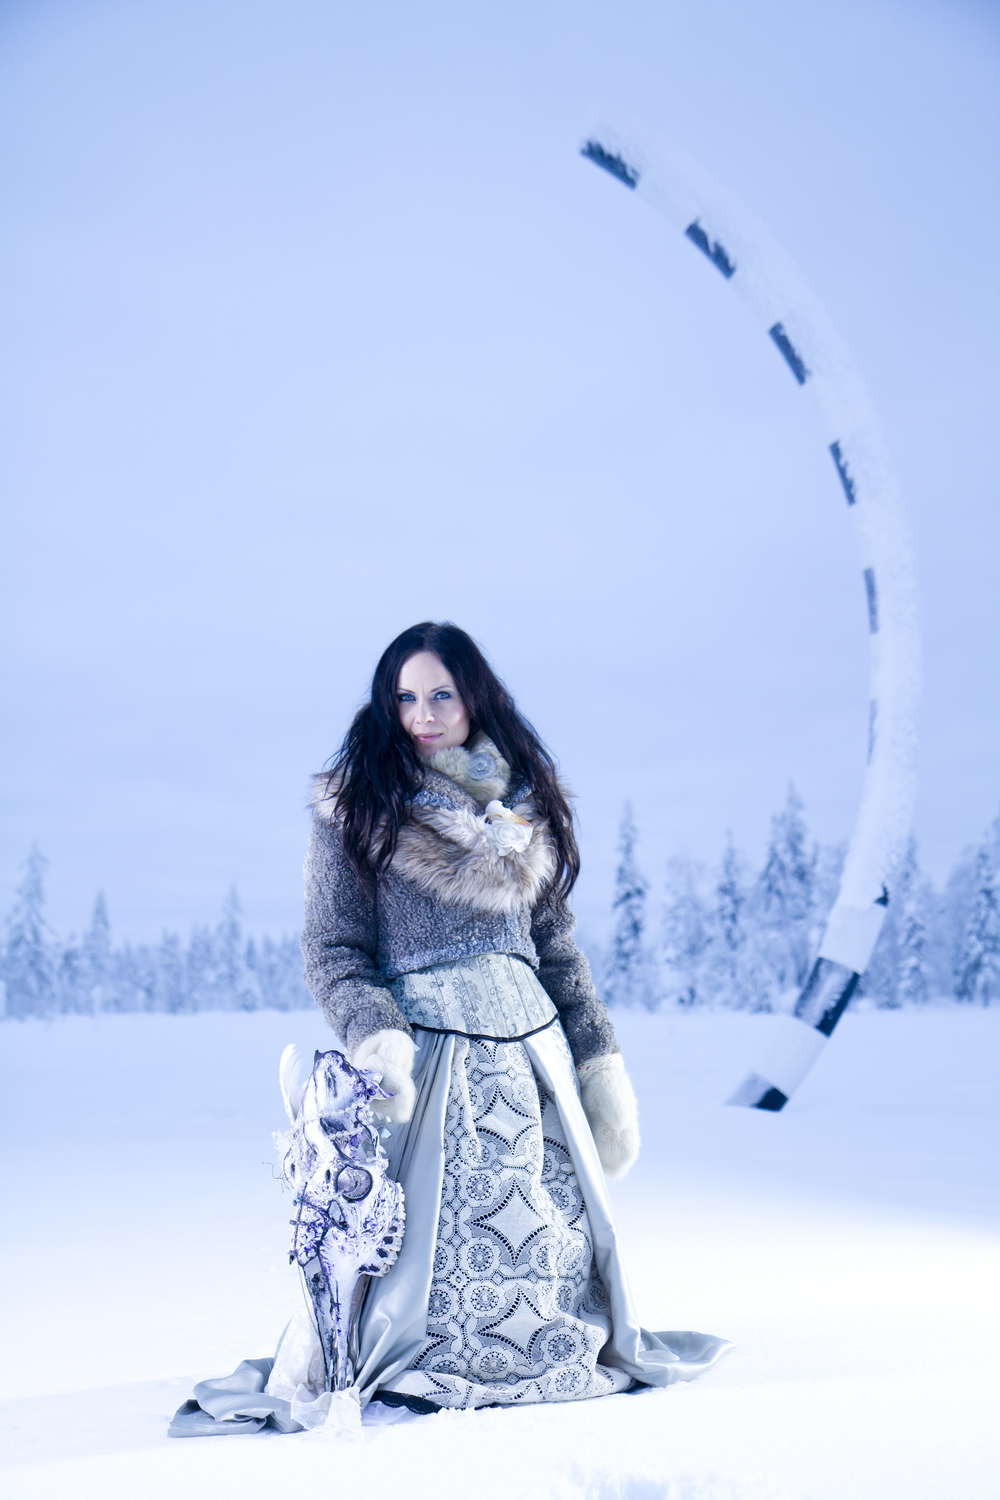 Petra Shara Stoor at the polar circle in Sweden. Photo: Fredrik Broman - Human Spectra